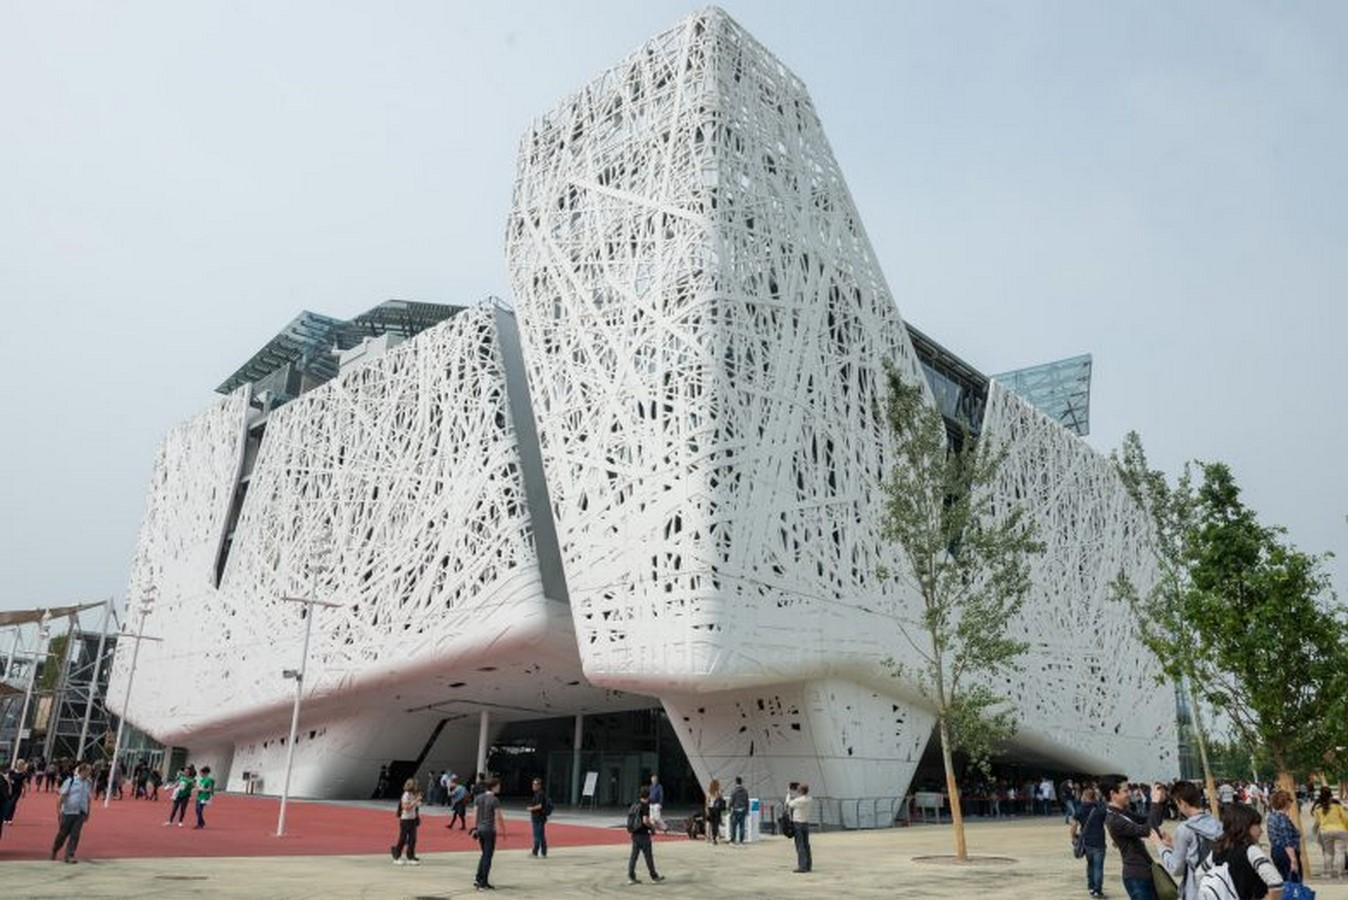 An Ornate Double Skin that Filters Air Pollution - Sheet2